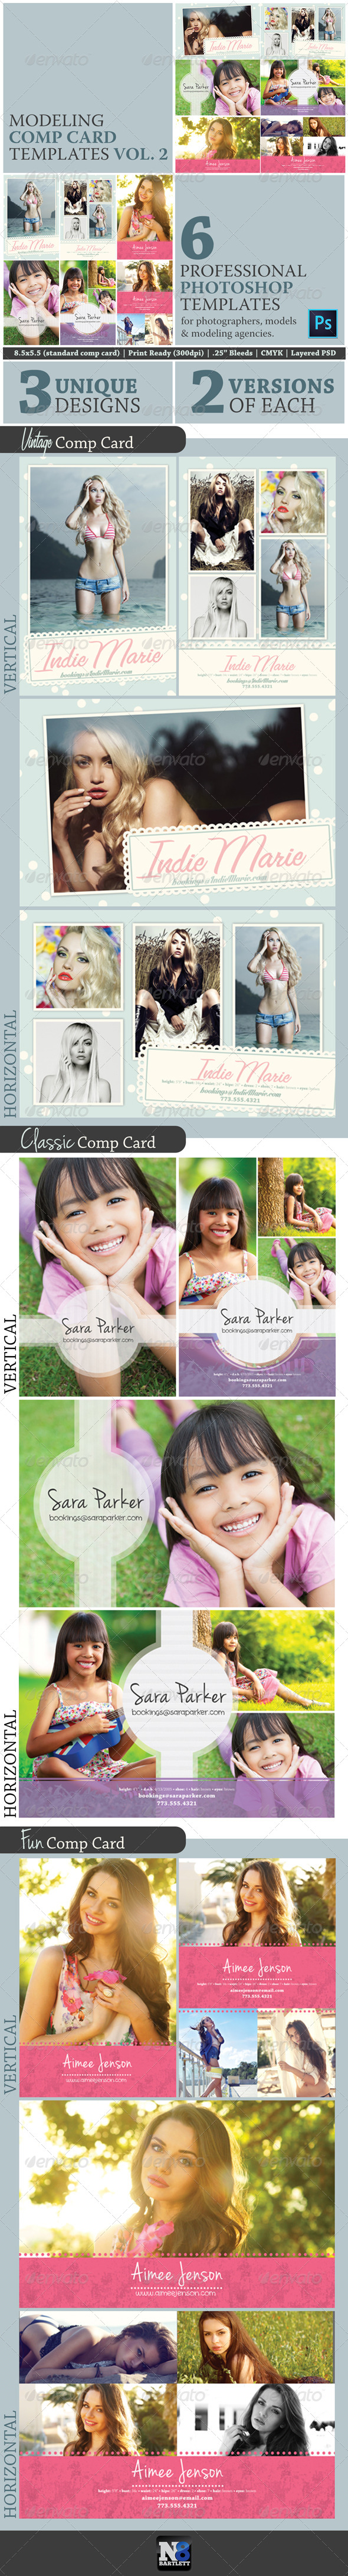 Model Comp Card Template Kit Vol. 2 - Miscellaneous Print Templates